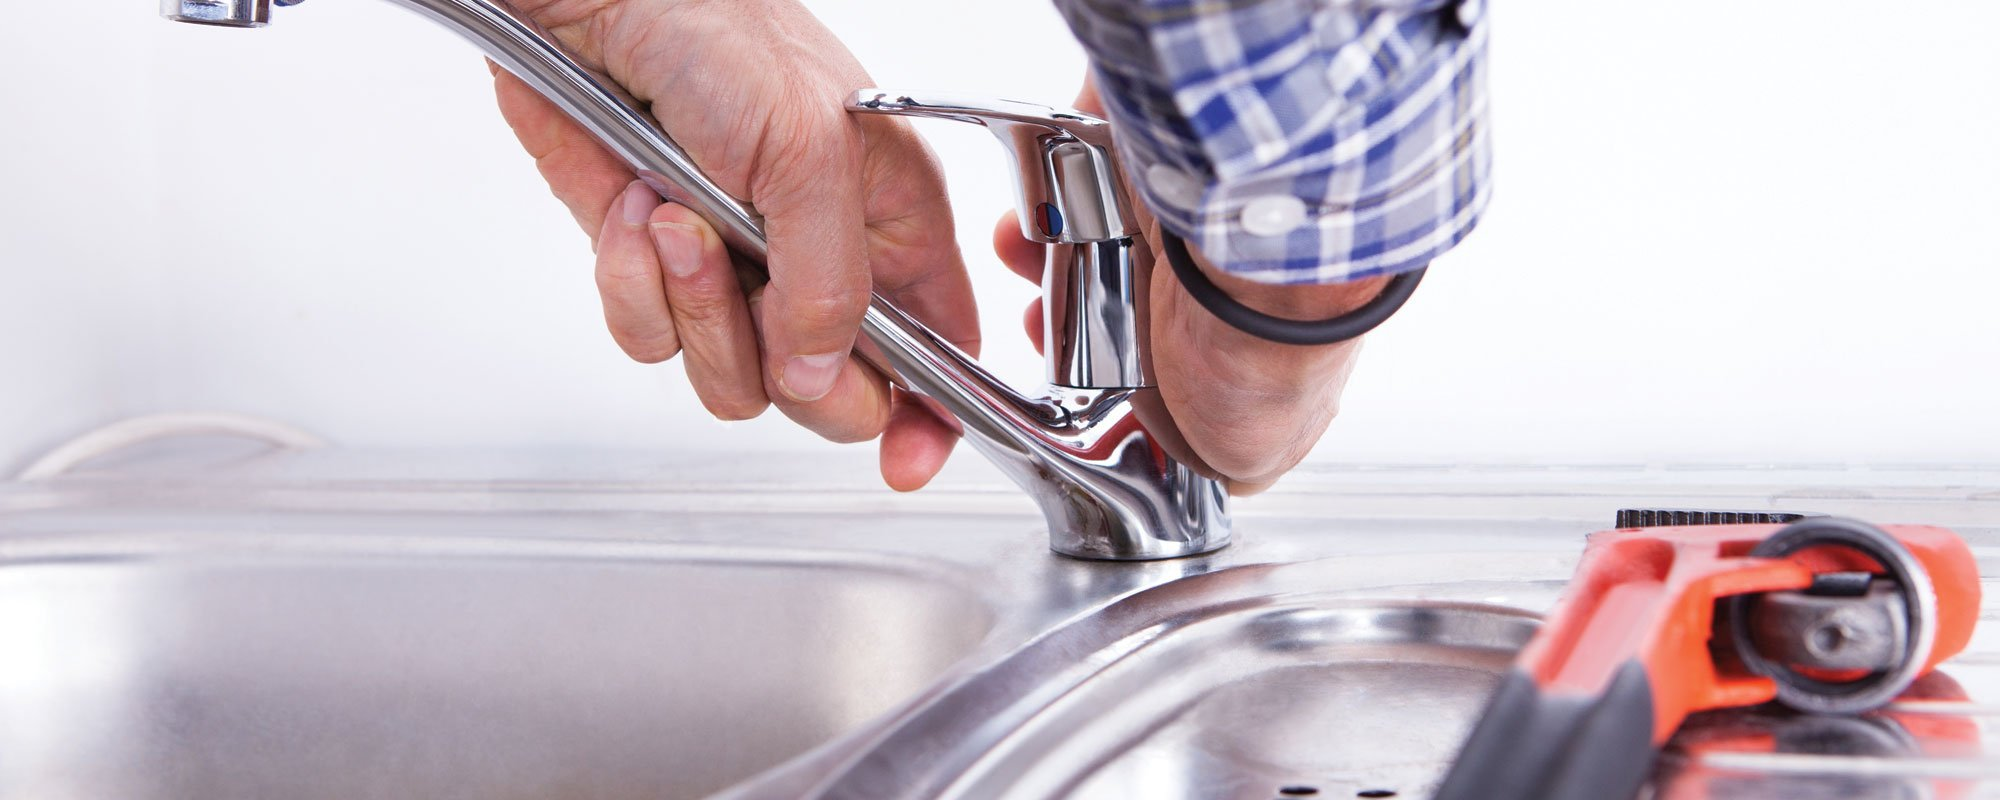 Faucets being installed by expert